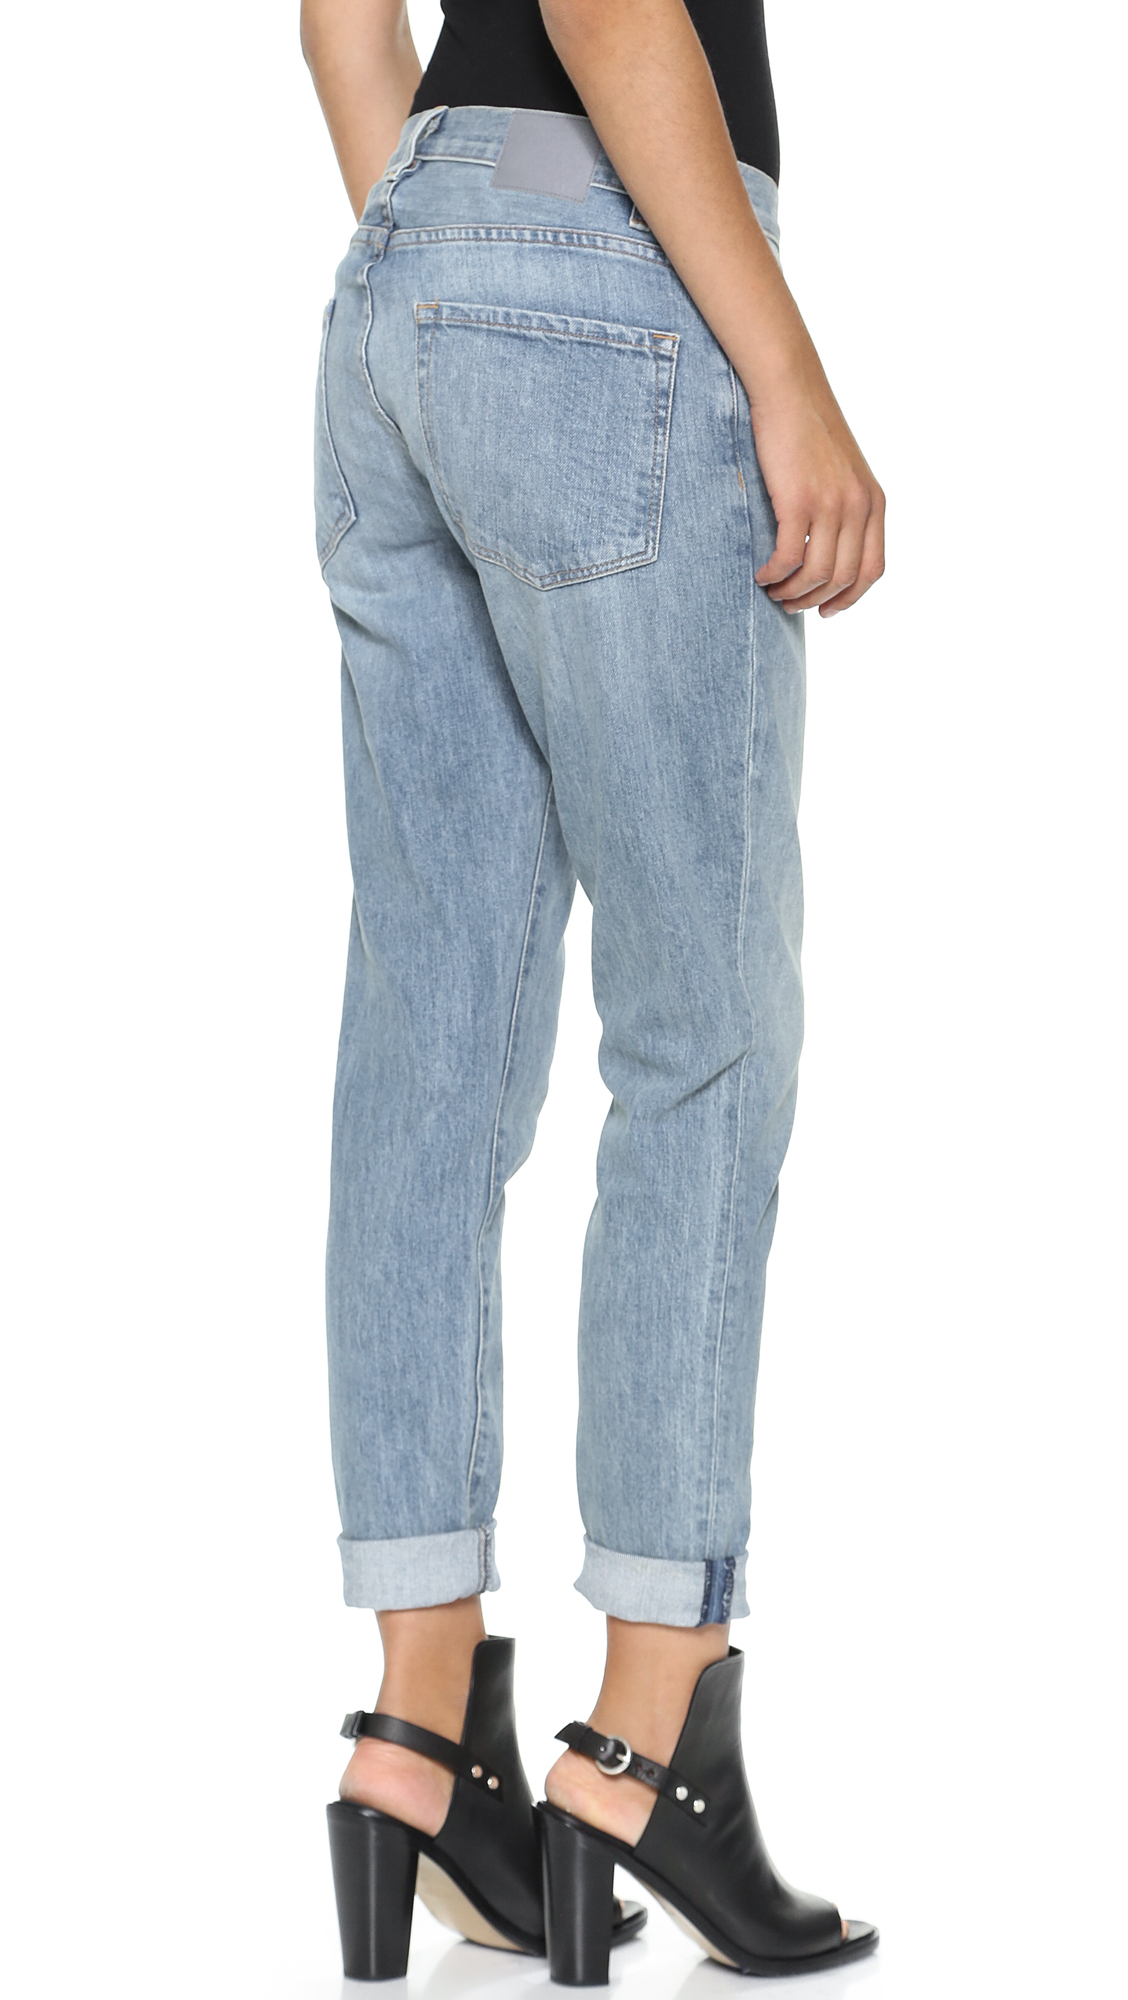 Lyst - 6397 Classic Baggy Jeans - Used Blue in Blue